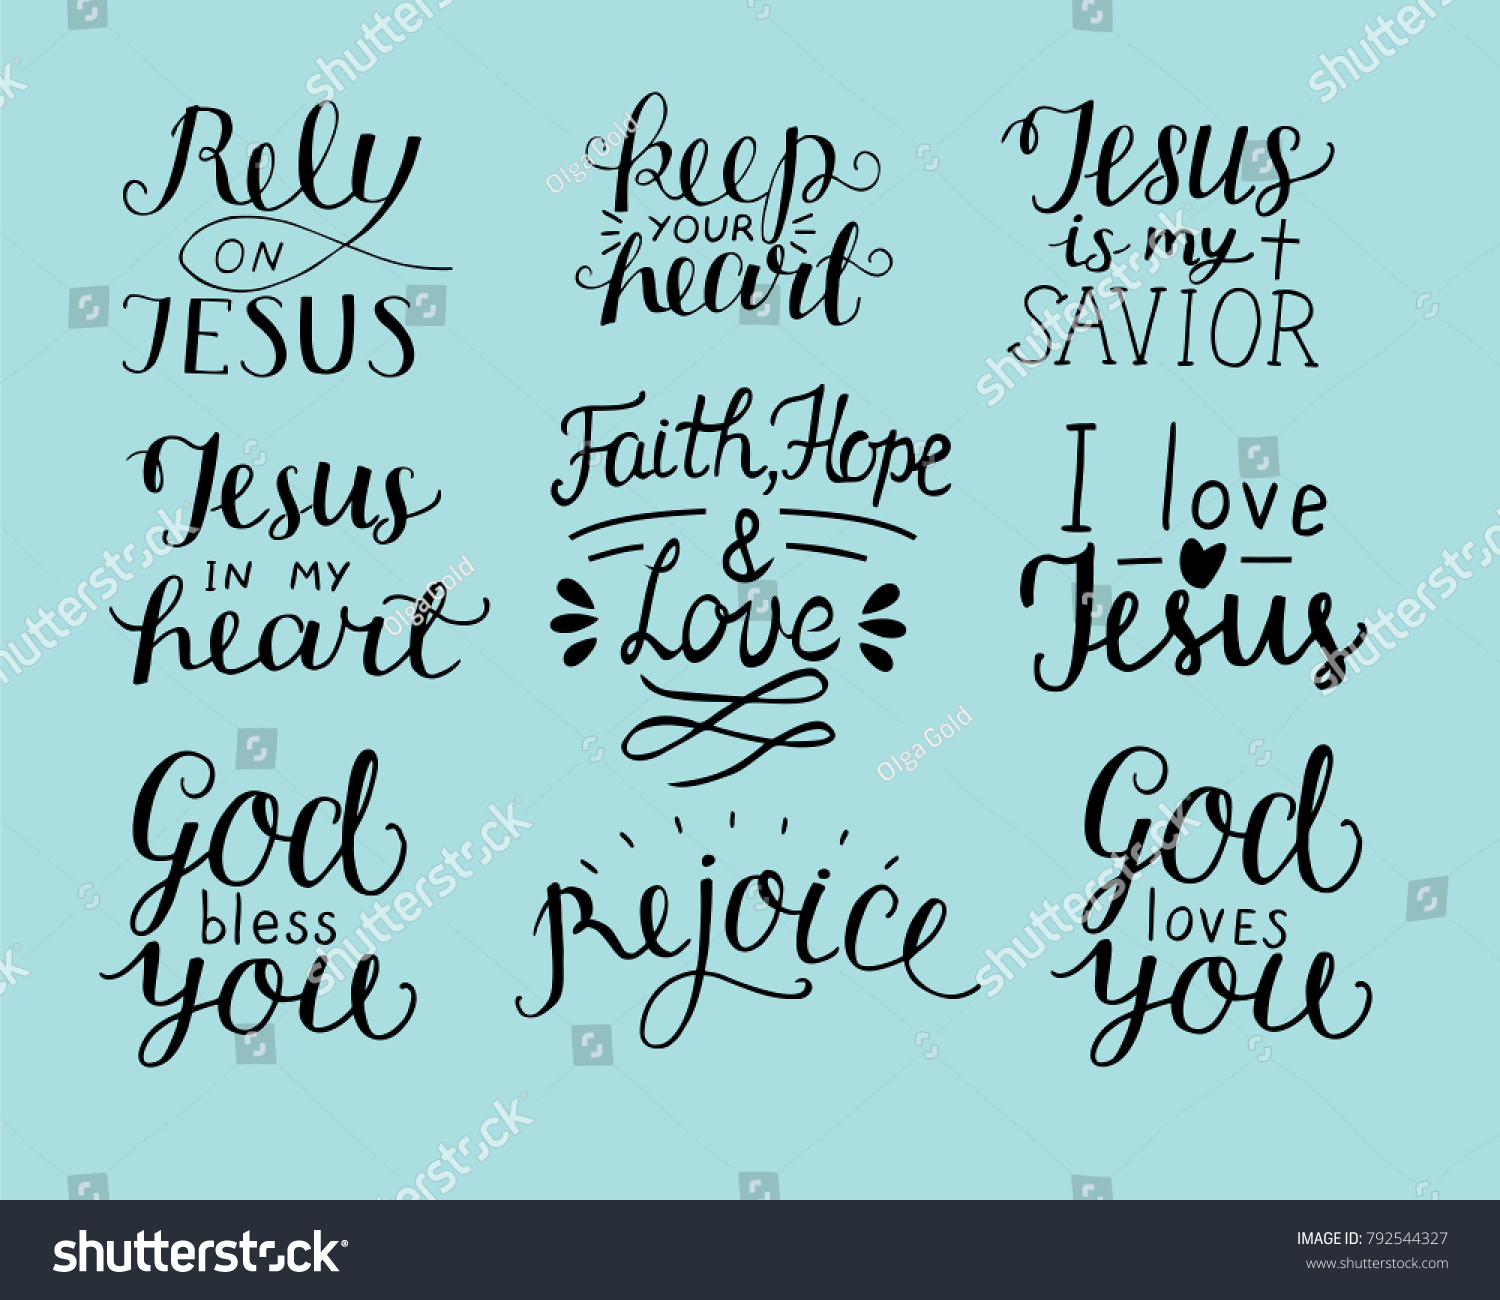 Christian Quotes About Love Set 9 Hand Lettering Christian Quotes Stock Vector 792544327